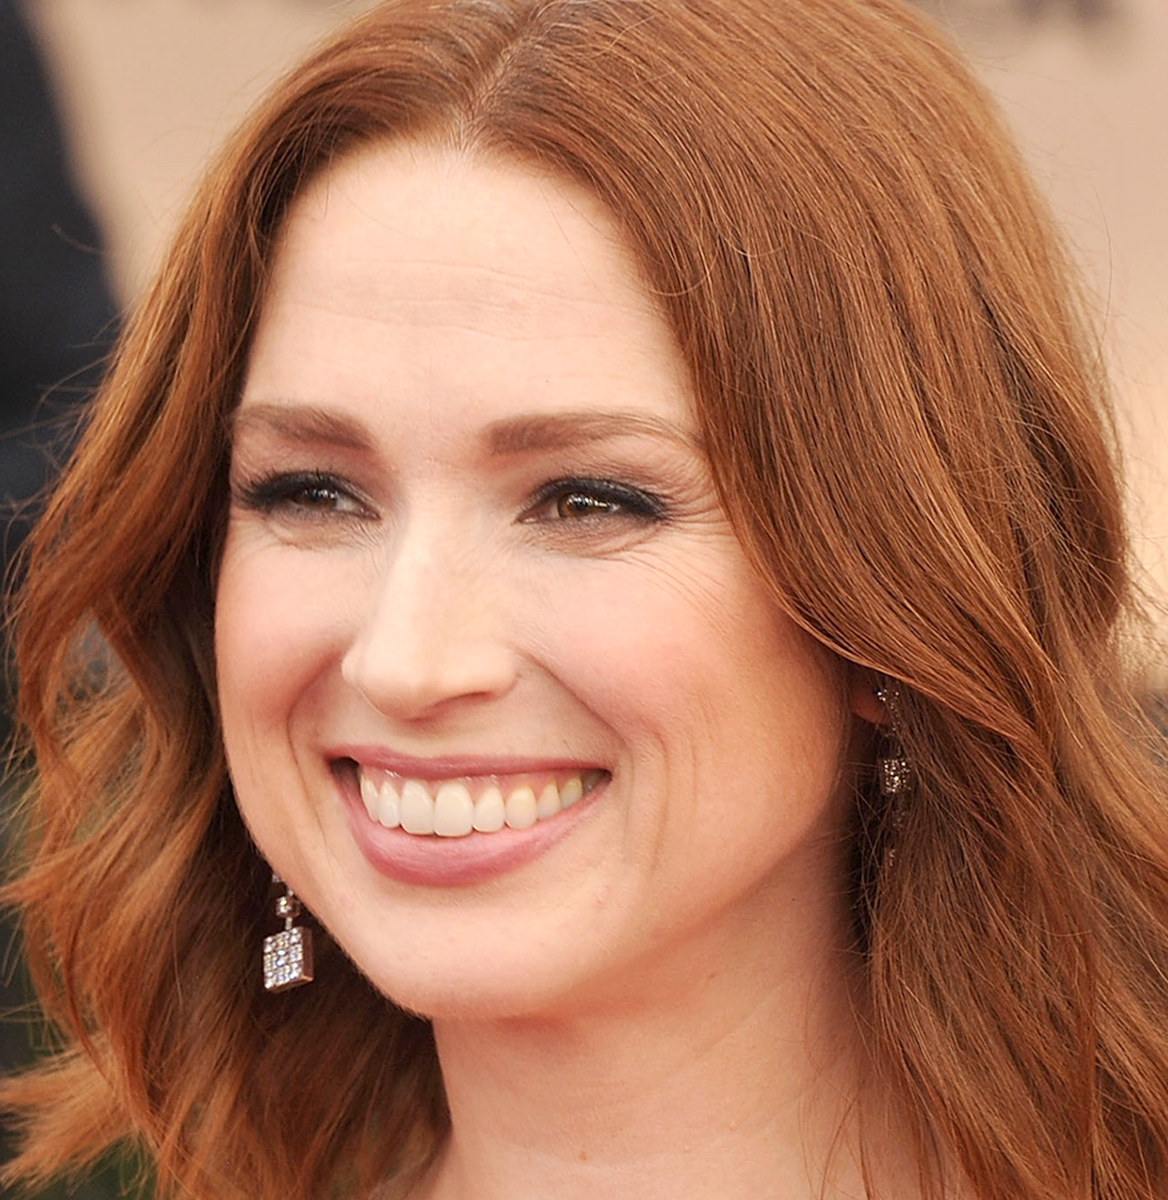 ellie kemper skin today main 190104 f86c99f75b919dd936d84e7ea597281c The Cast Of The Upcoming Home Alone Reboot Has Been Announced